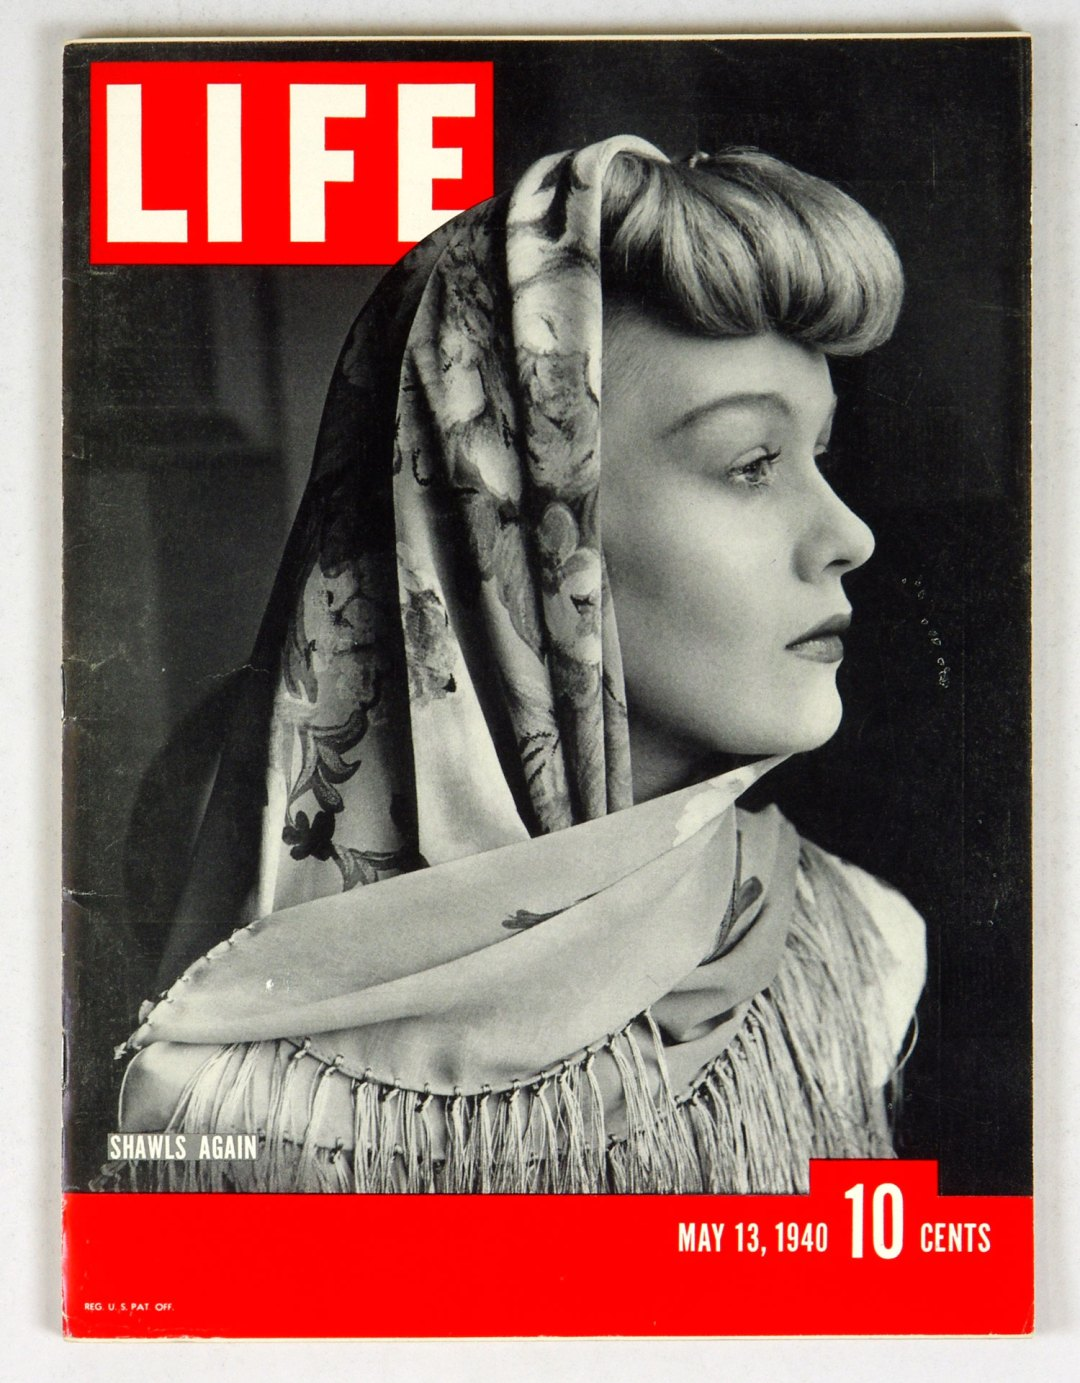 LIFE Magazine 1940 May 13 Shawls Again